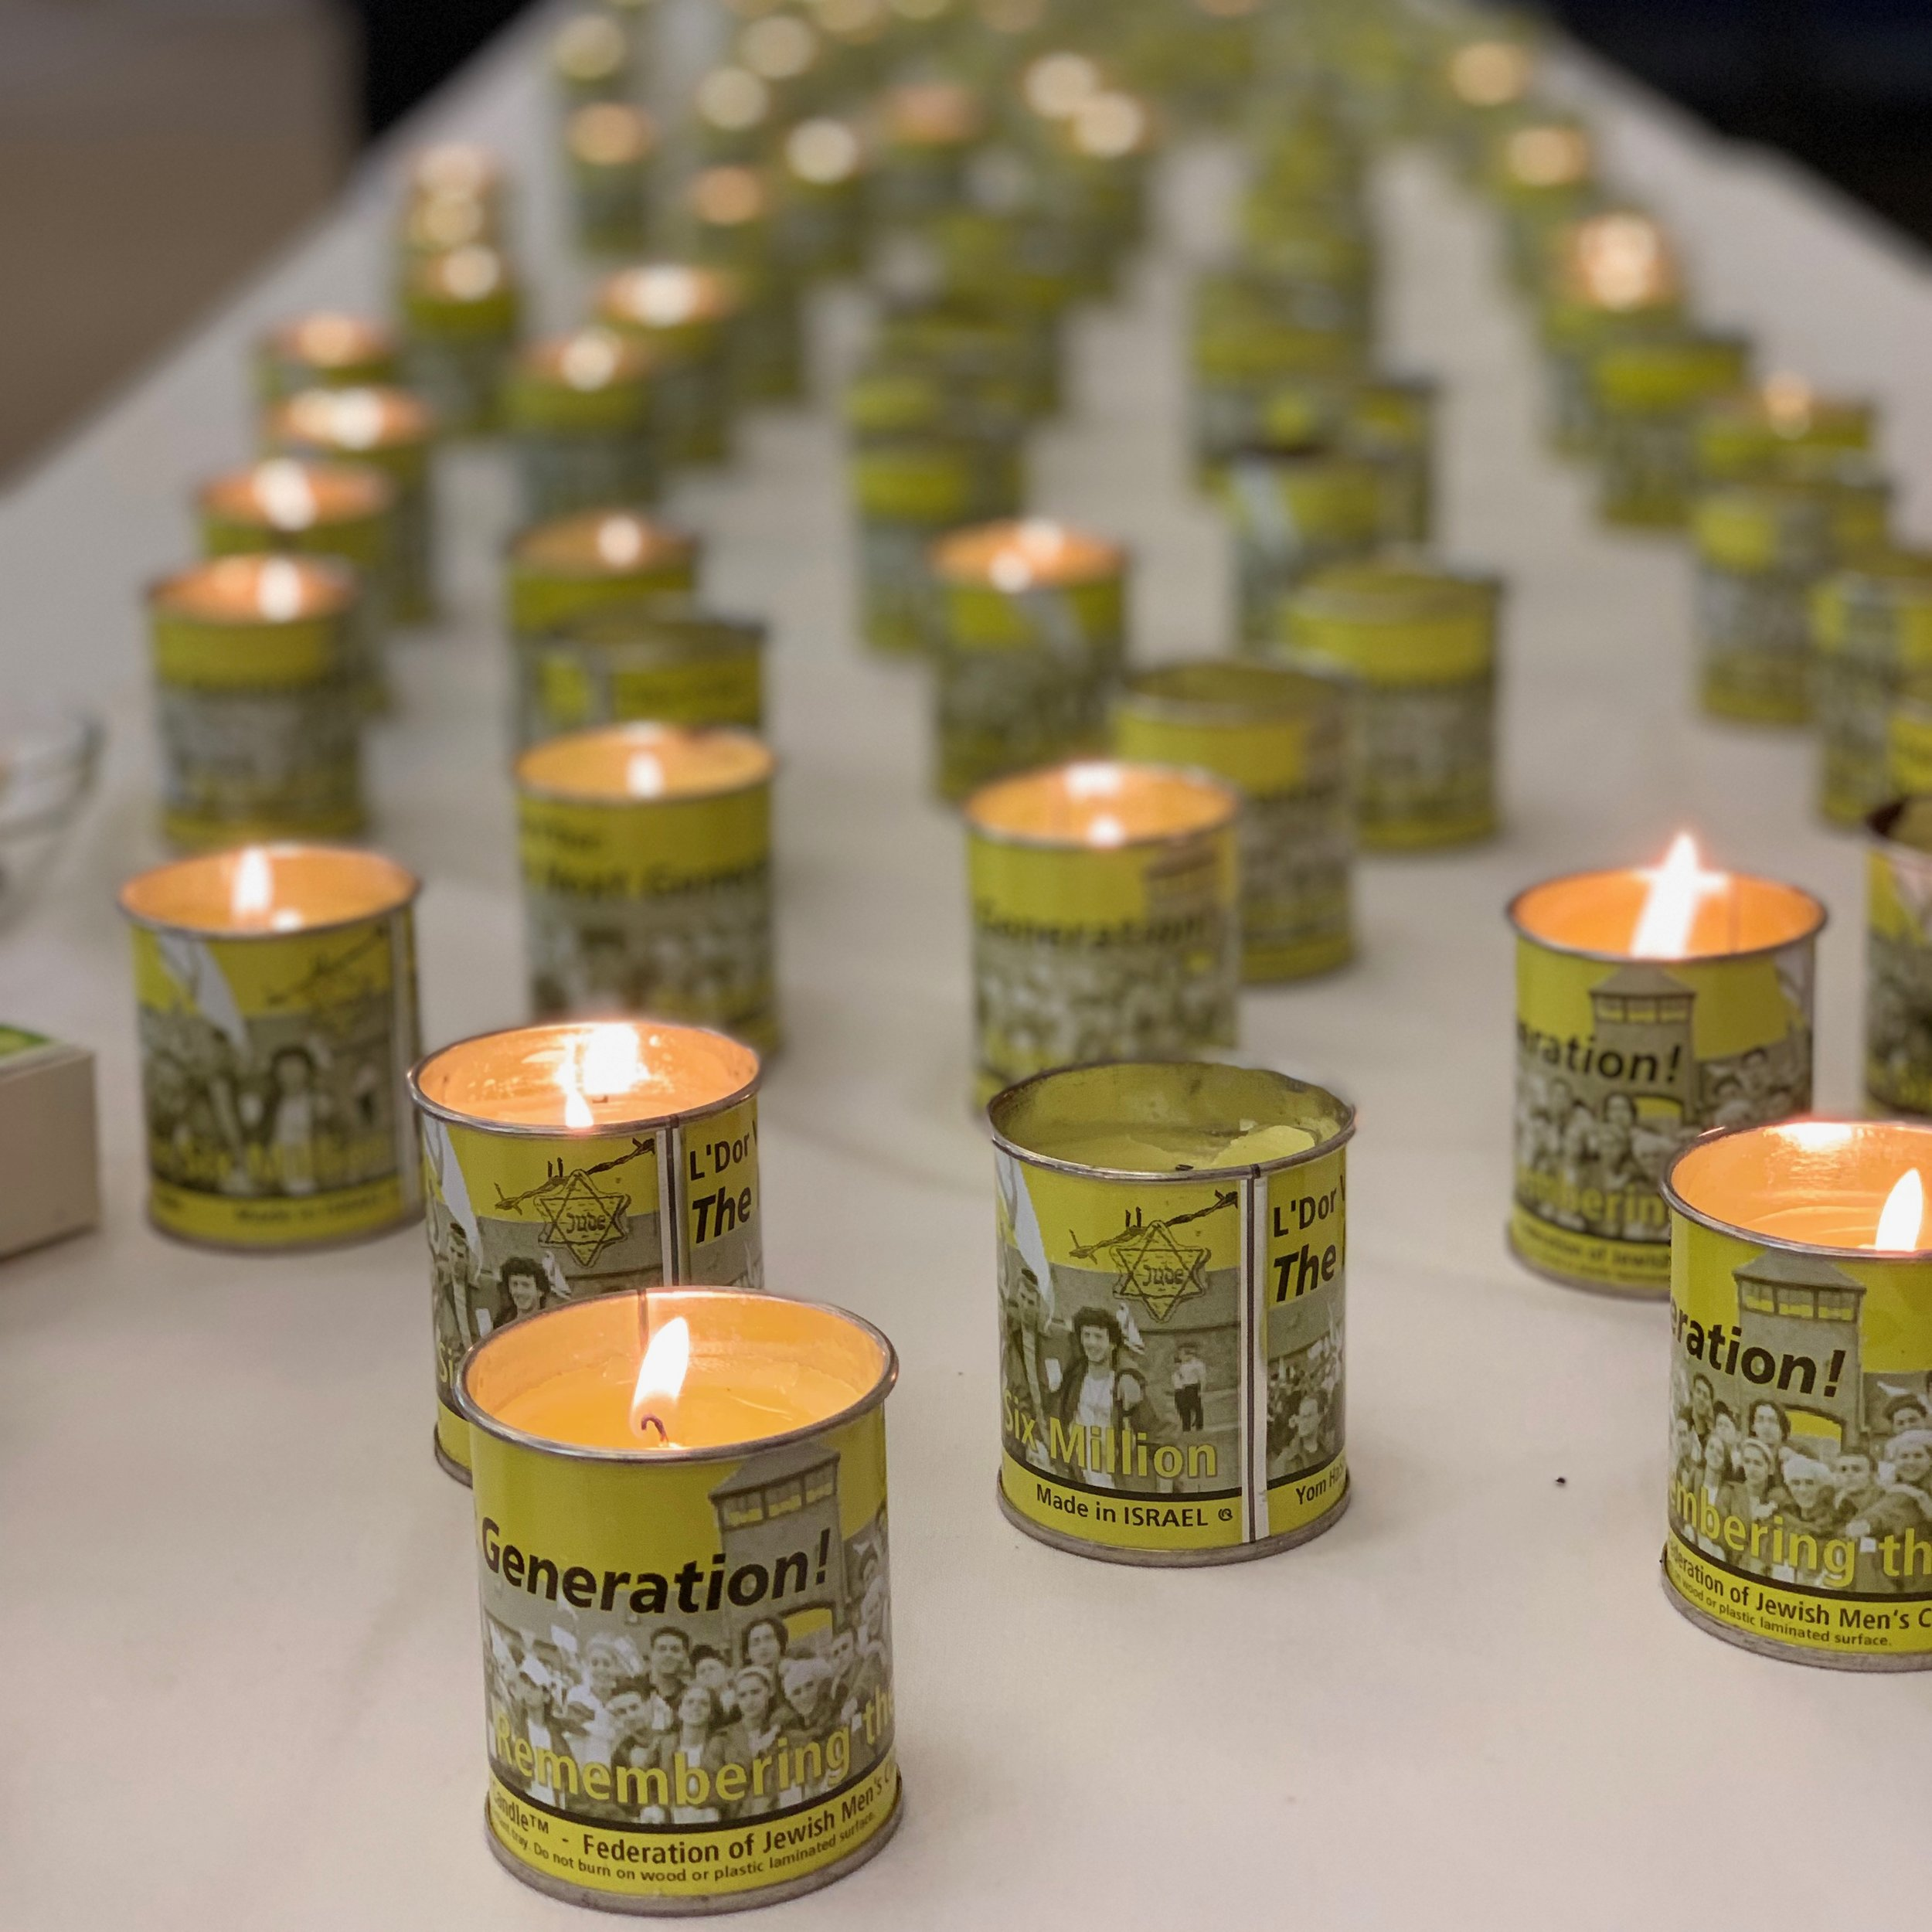 """The Next Generation"" Remembrance candles lit on Yom HaShoah, Holocaust Remembrance Day. How does the remembering of genocide by each generation inform our actions, not only for Jews, but for all people?"